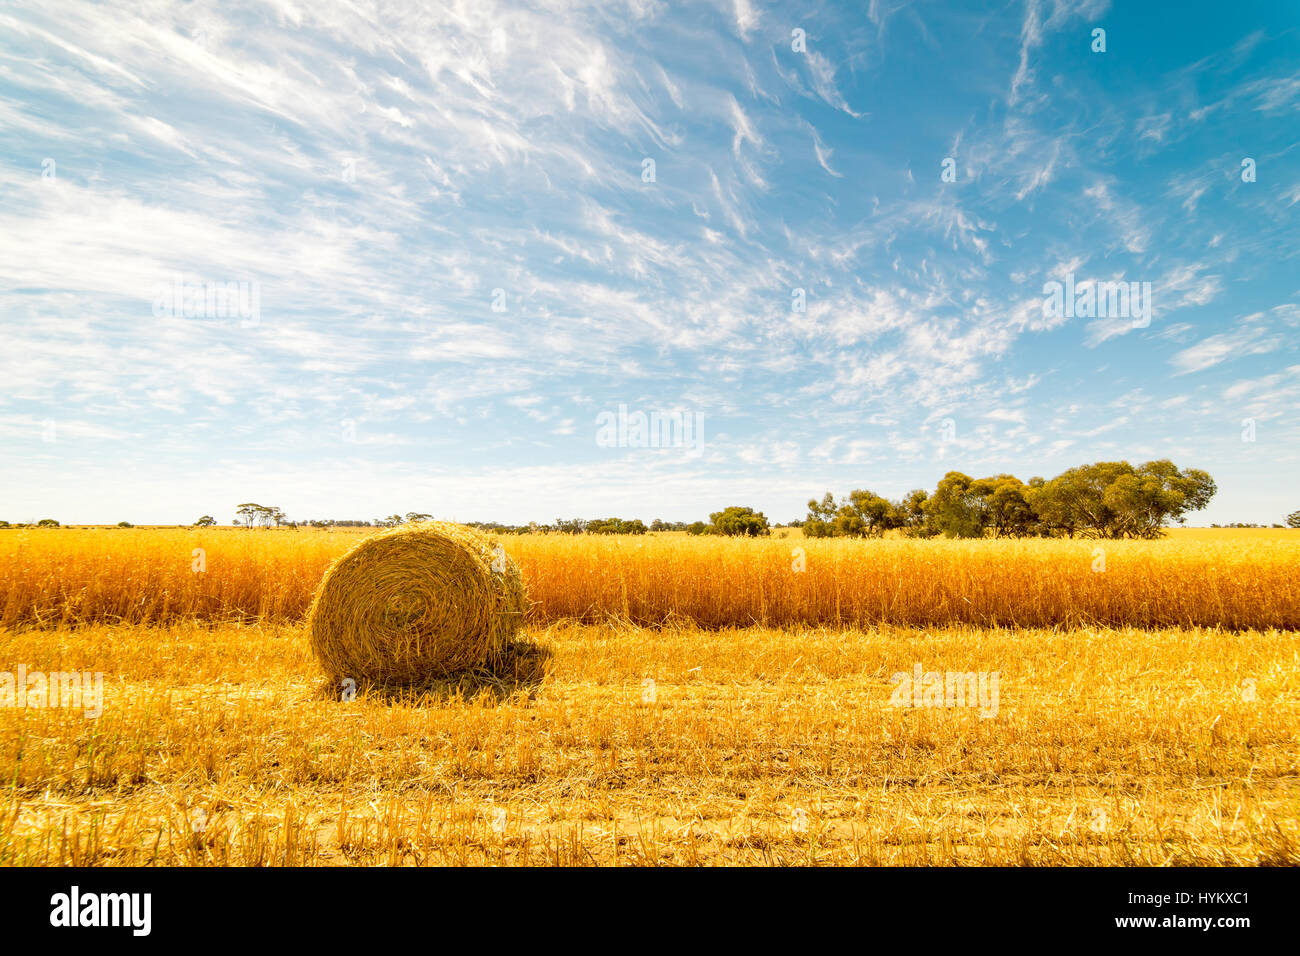 Hay and straw bales in the end of summer. Western Australia. - Stock Image